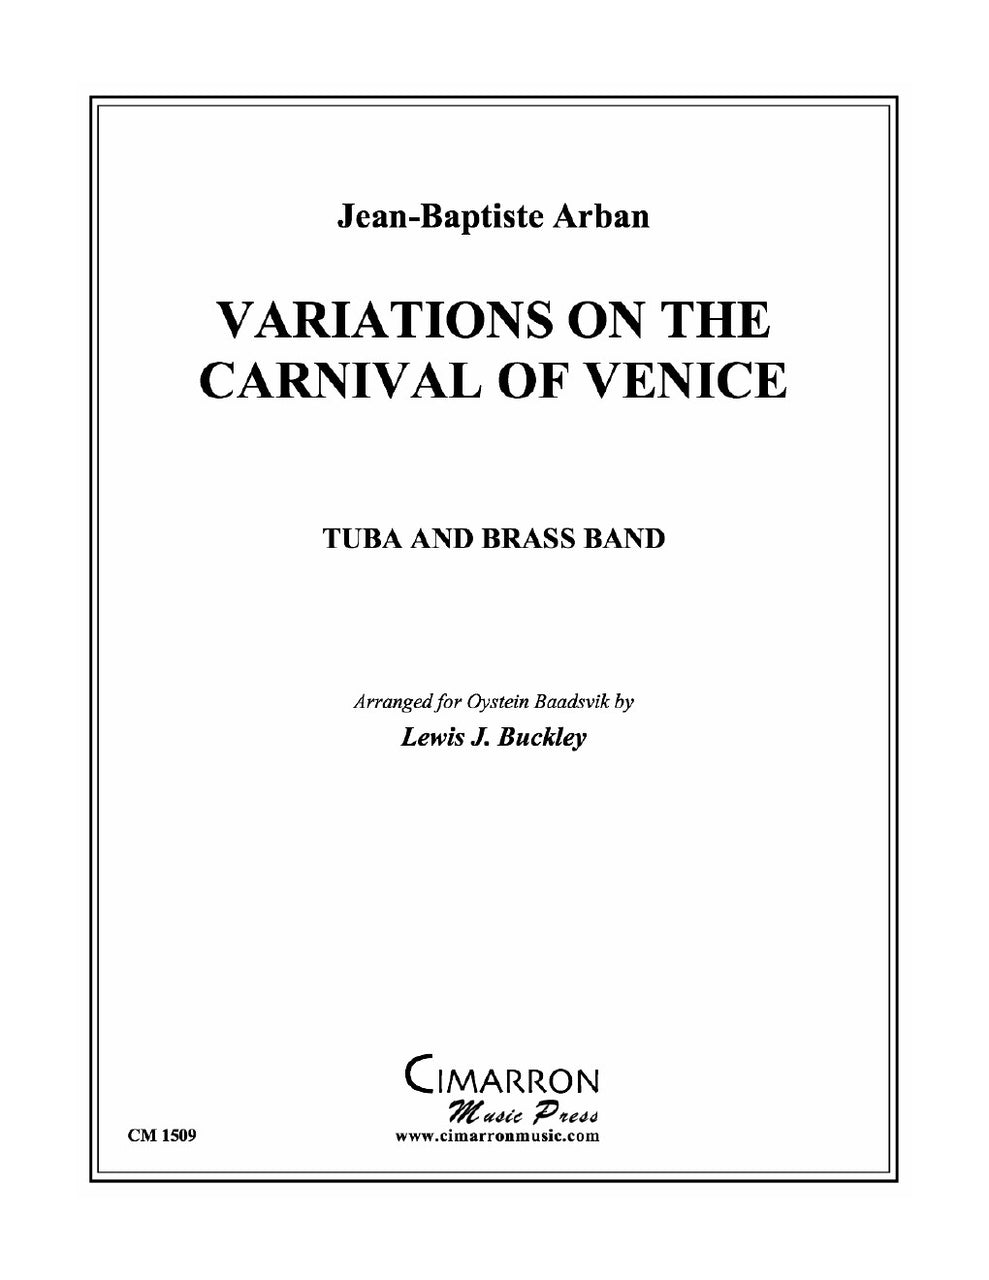 Arban - Variations on Carnival of Venice for Tuba and Brass Band